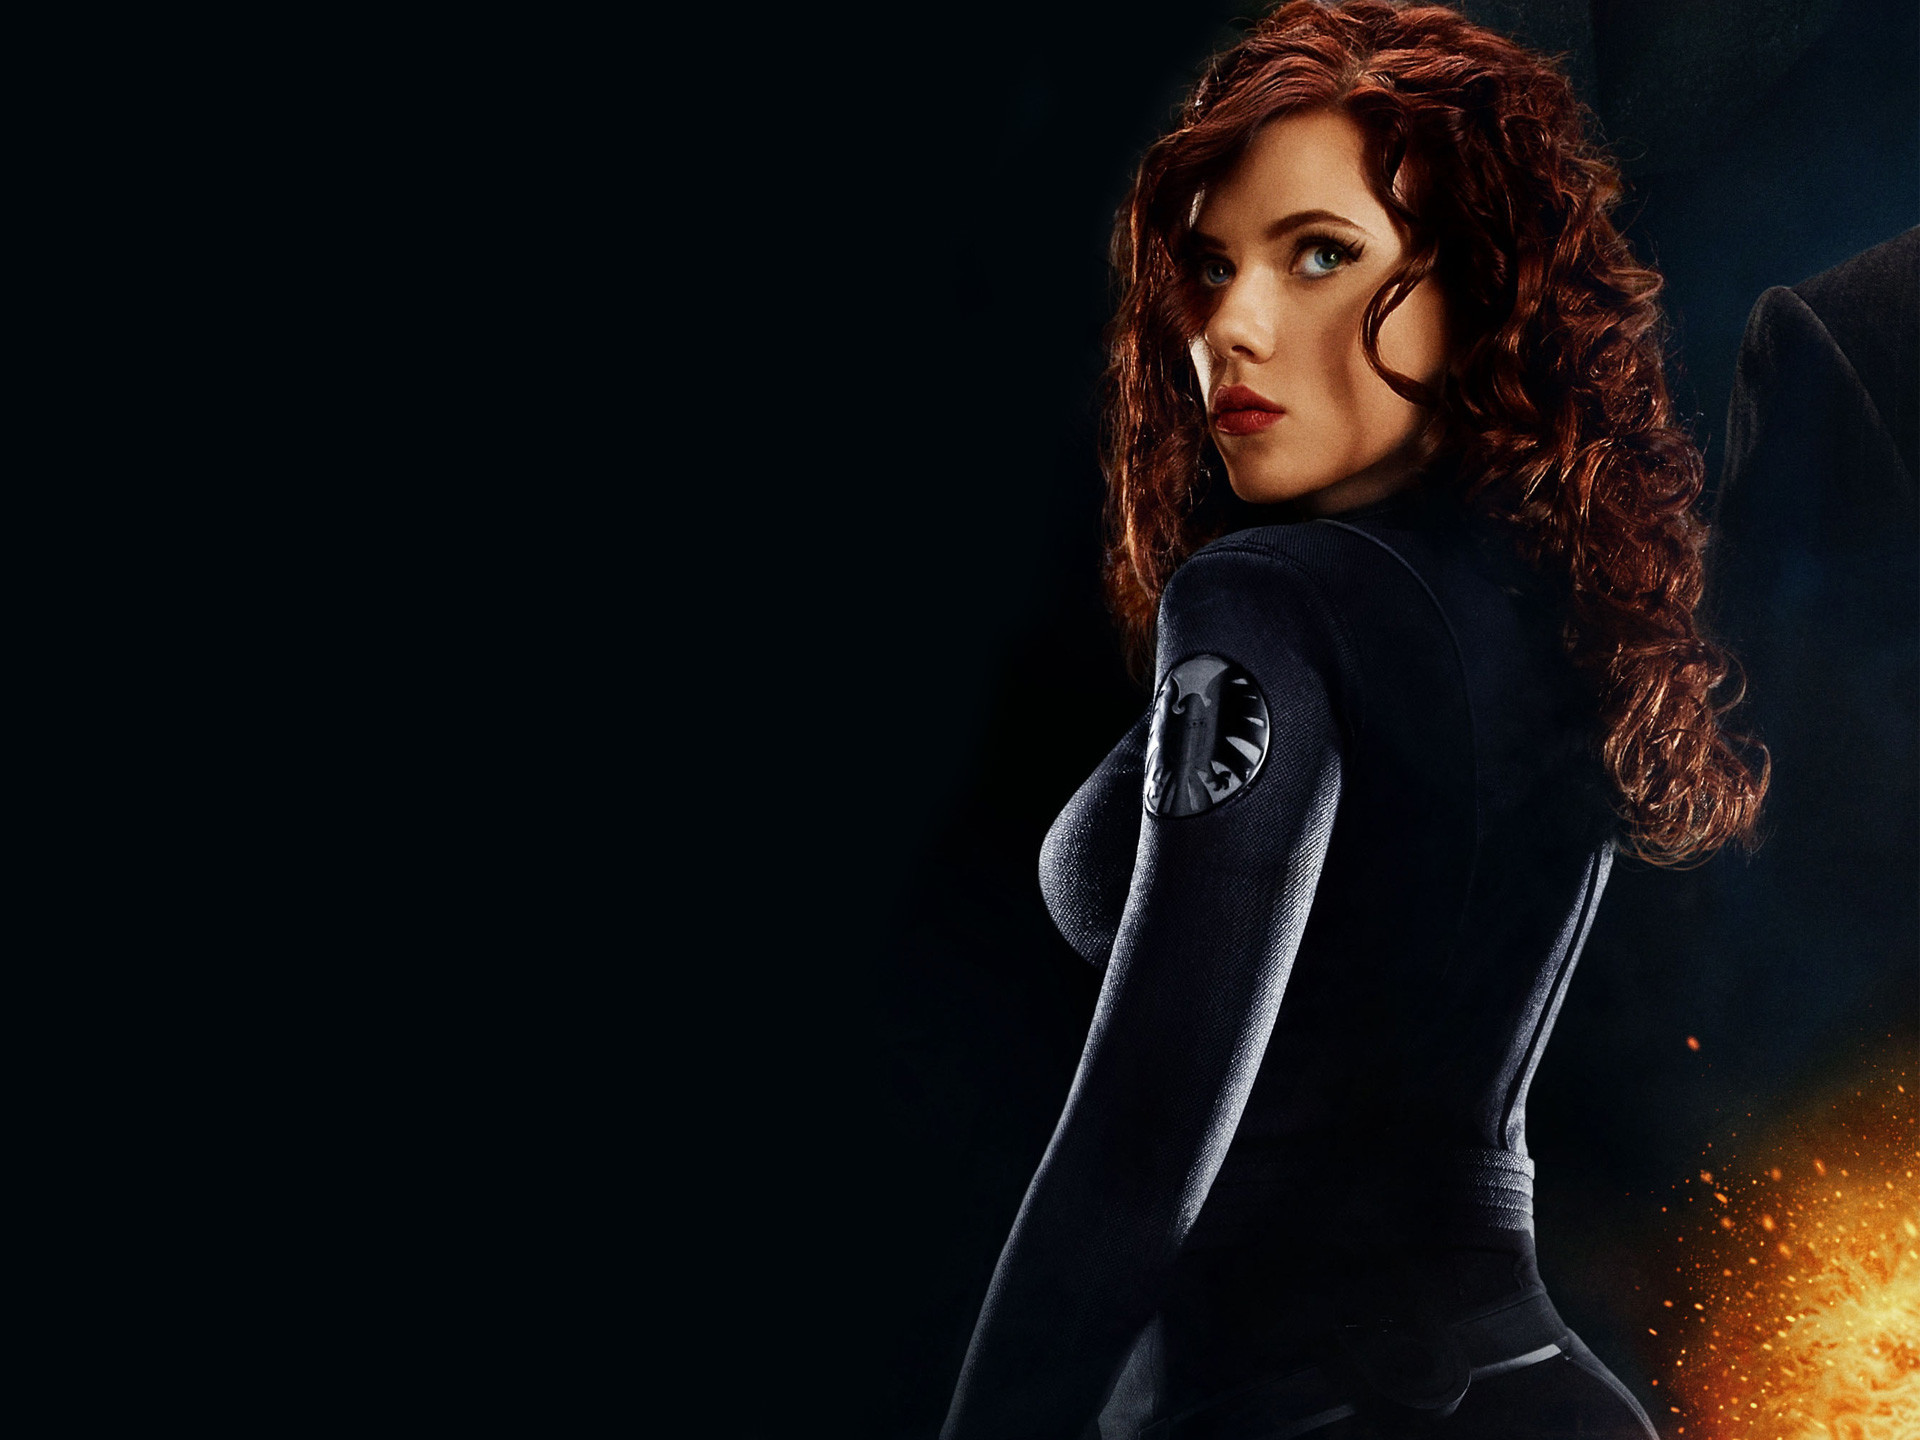 Scarlett Johansson Black Widow Wallpaper Wallpapertag